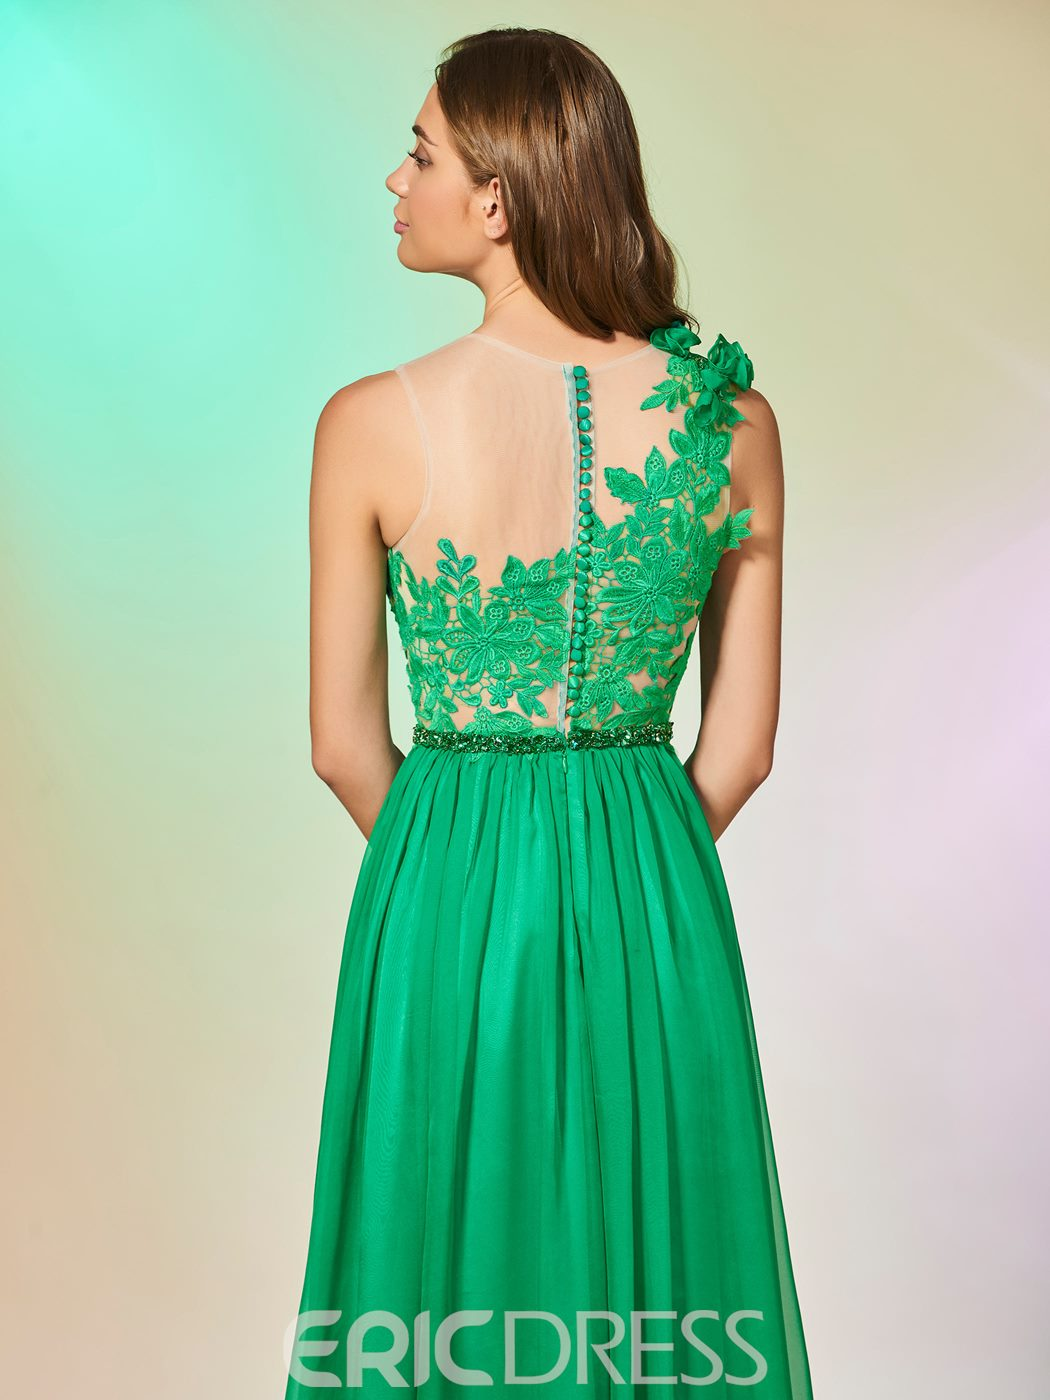 Ericdress A Line Applique Baeded Long Prom Dress With Button Back